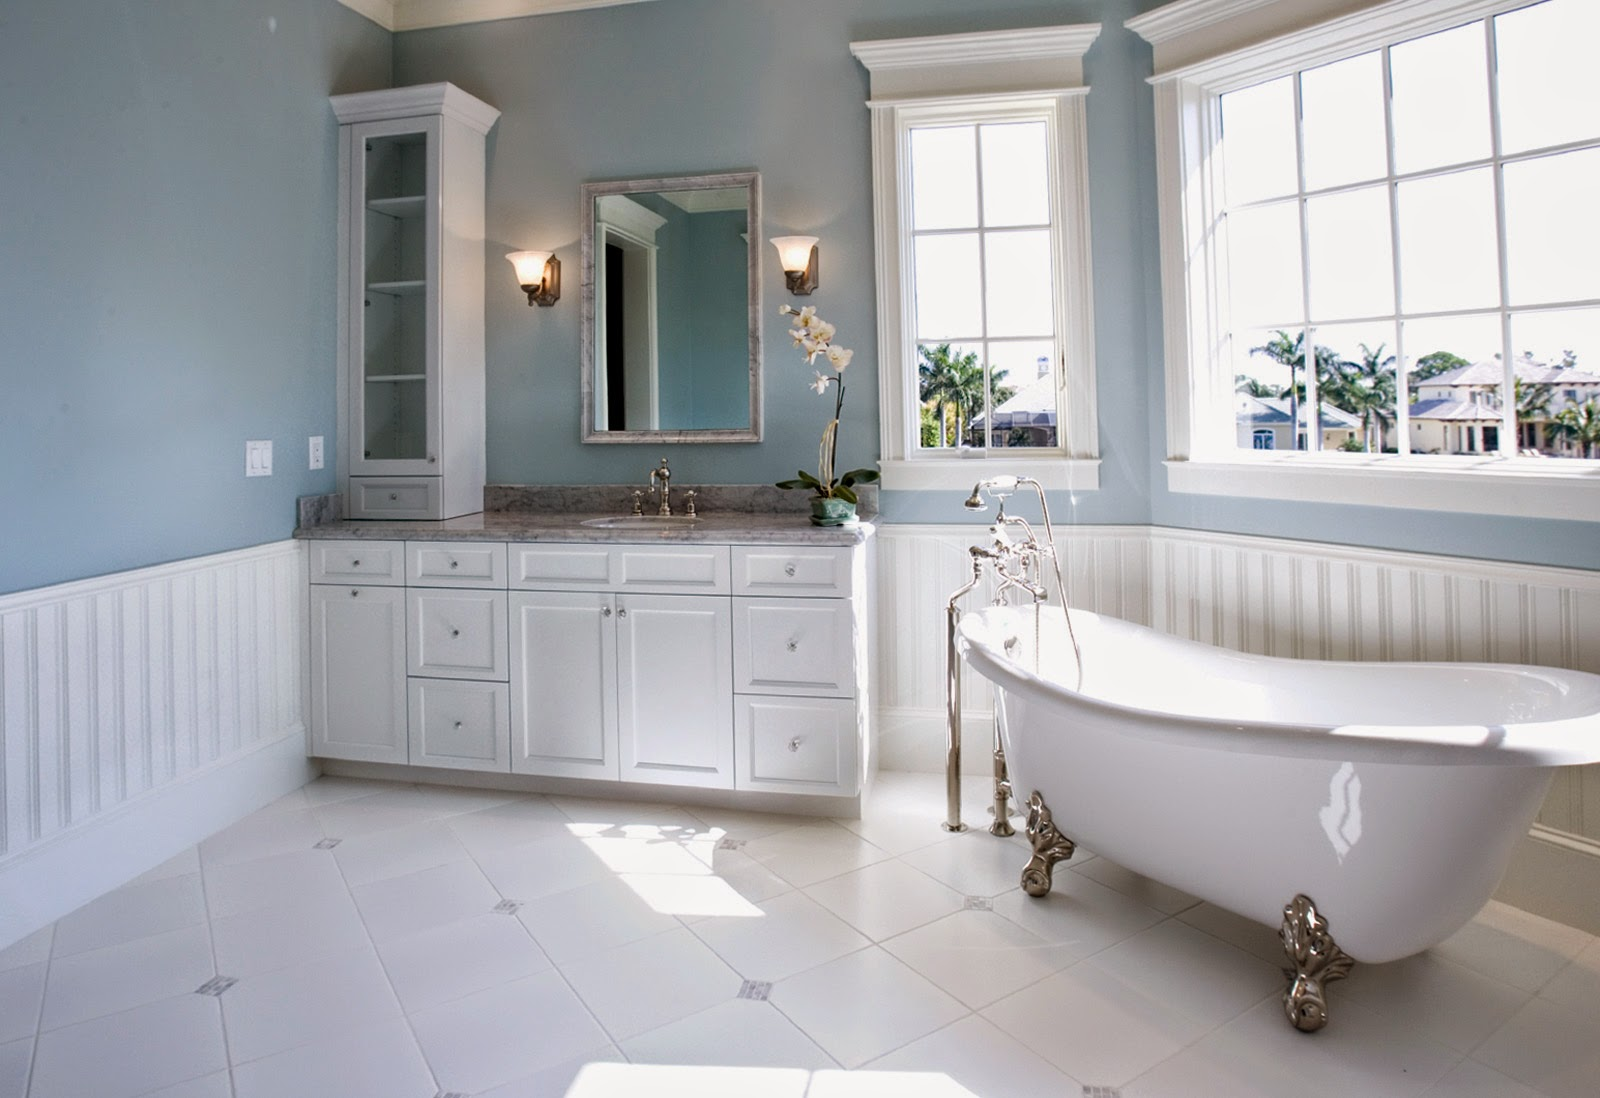 Top 10 beautiful bathroom design 2014 home interior blog for Design your bathroom